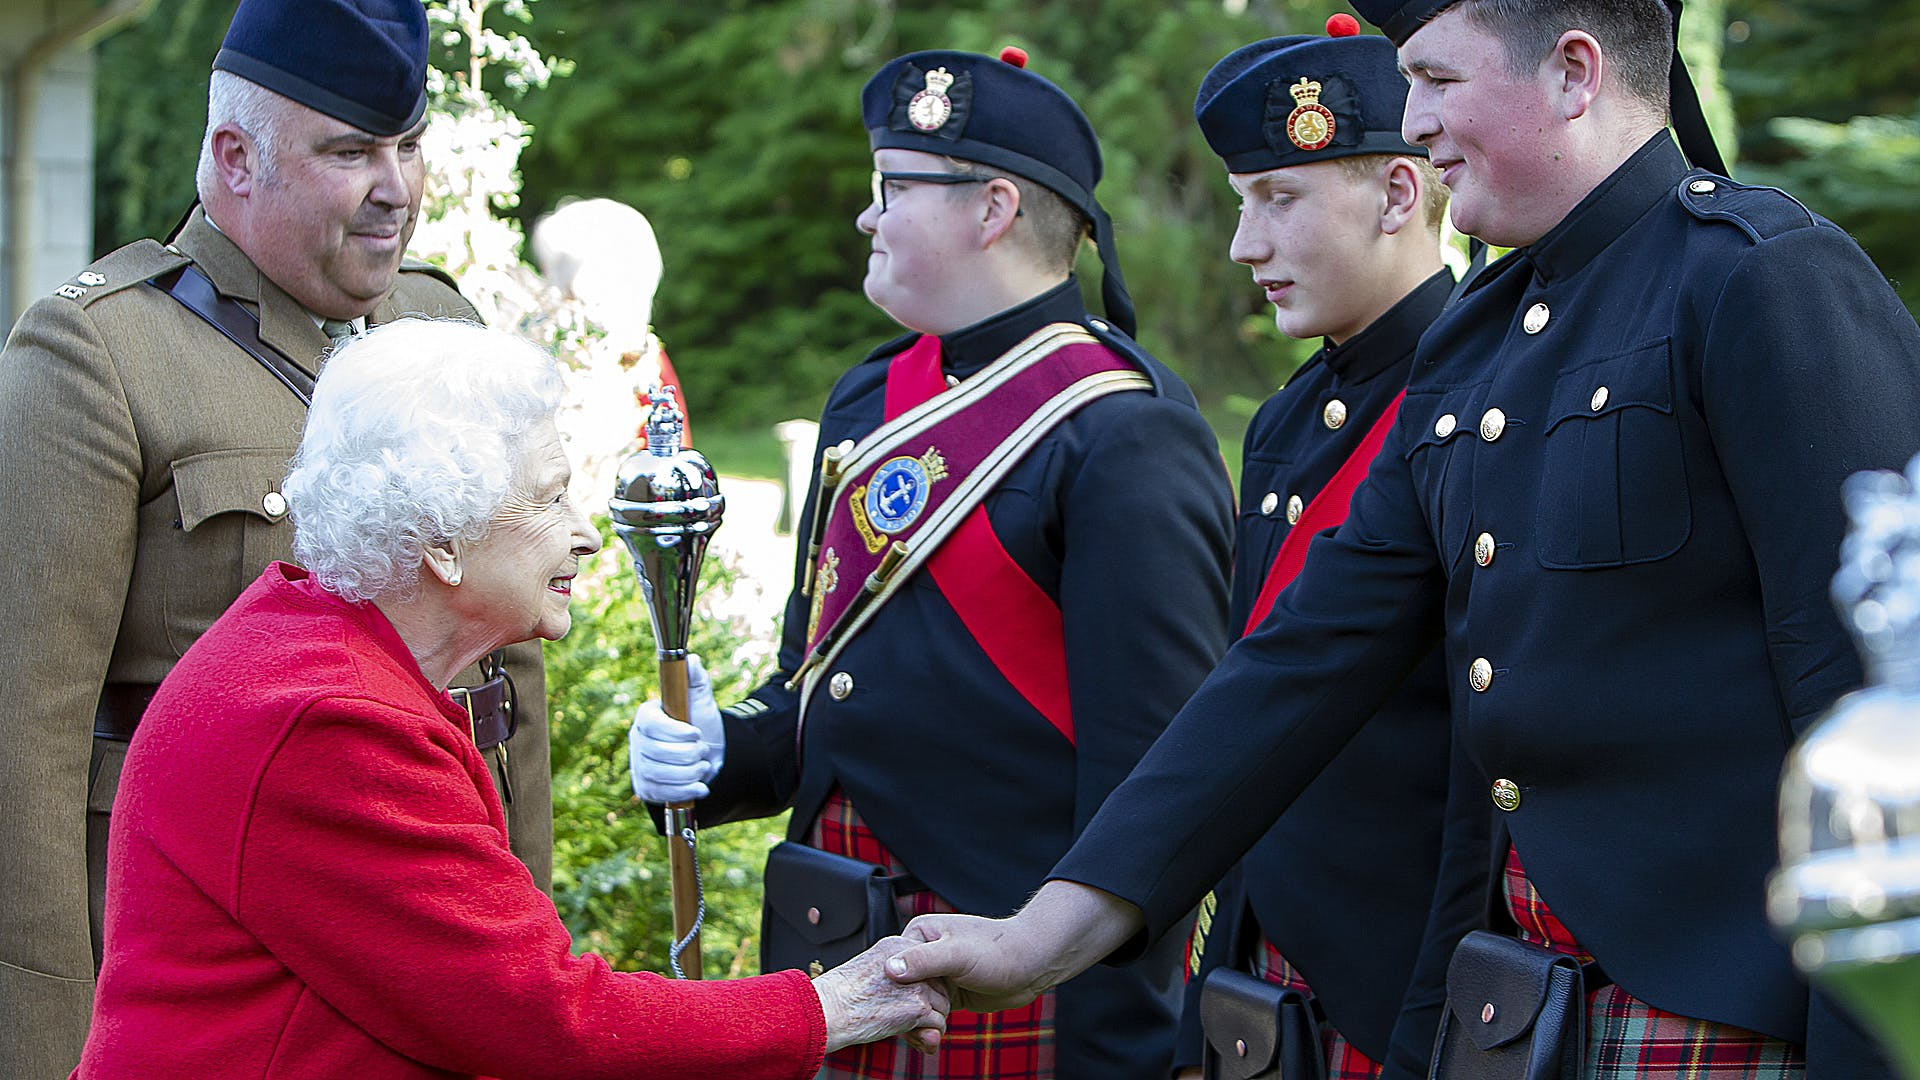 The Queen meets cadets after the Beating of the Retreat